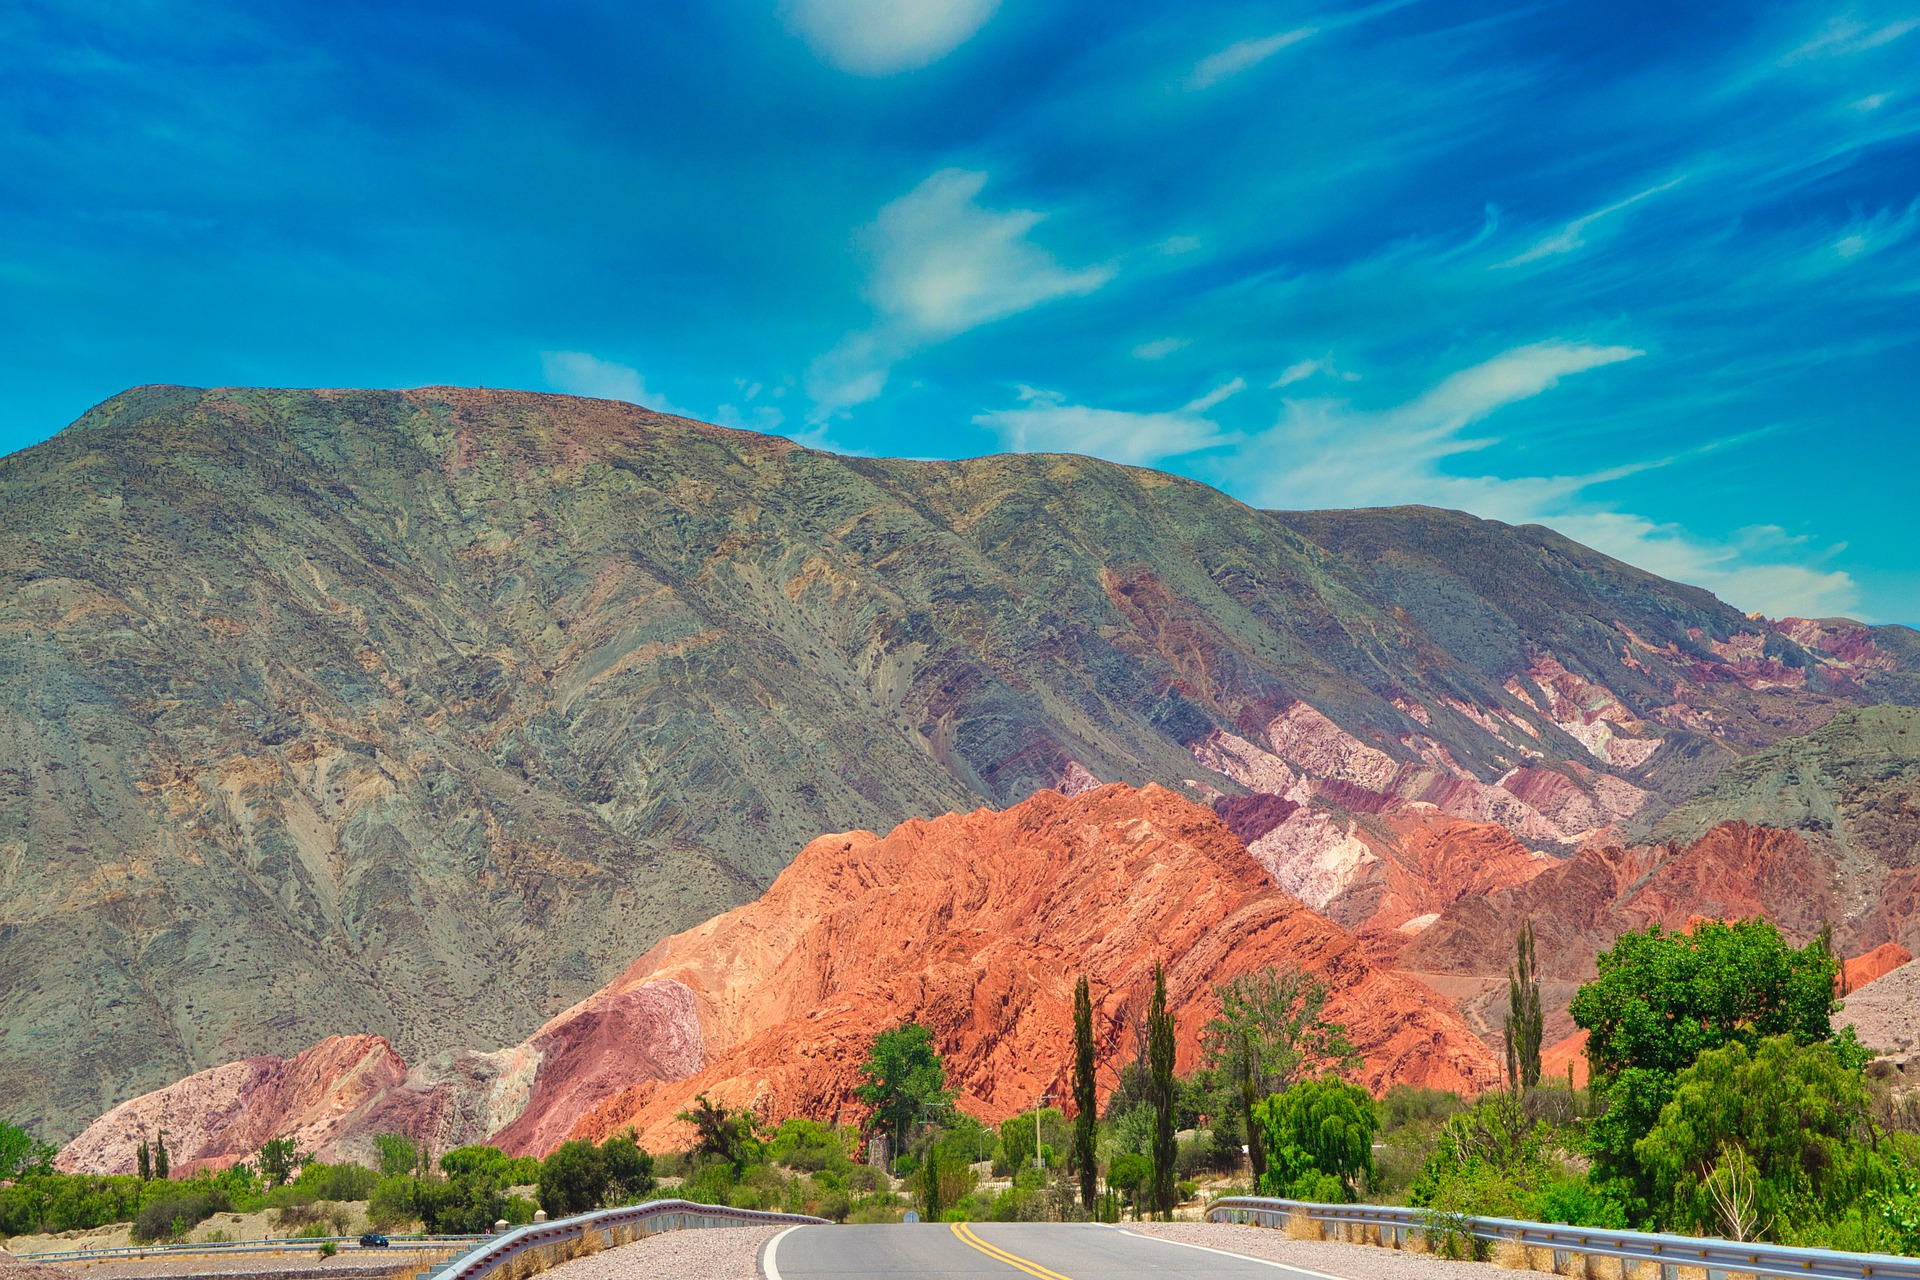 A Land of Wine, Culture & Falls | Humahuaca Gorge, Argentina